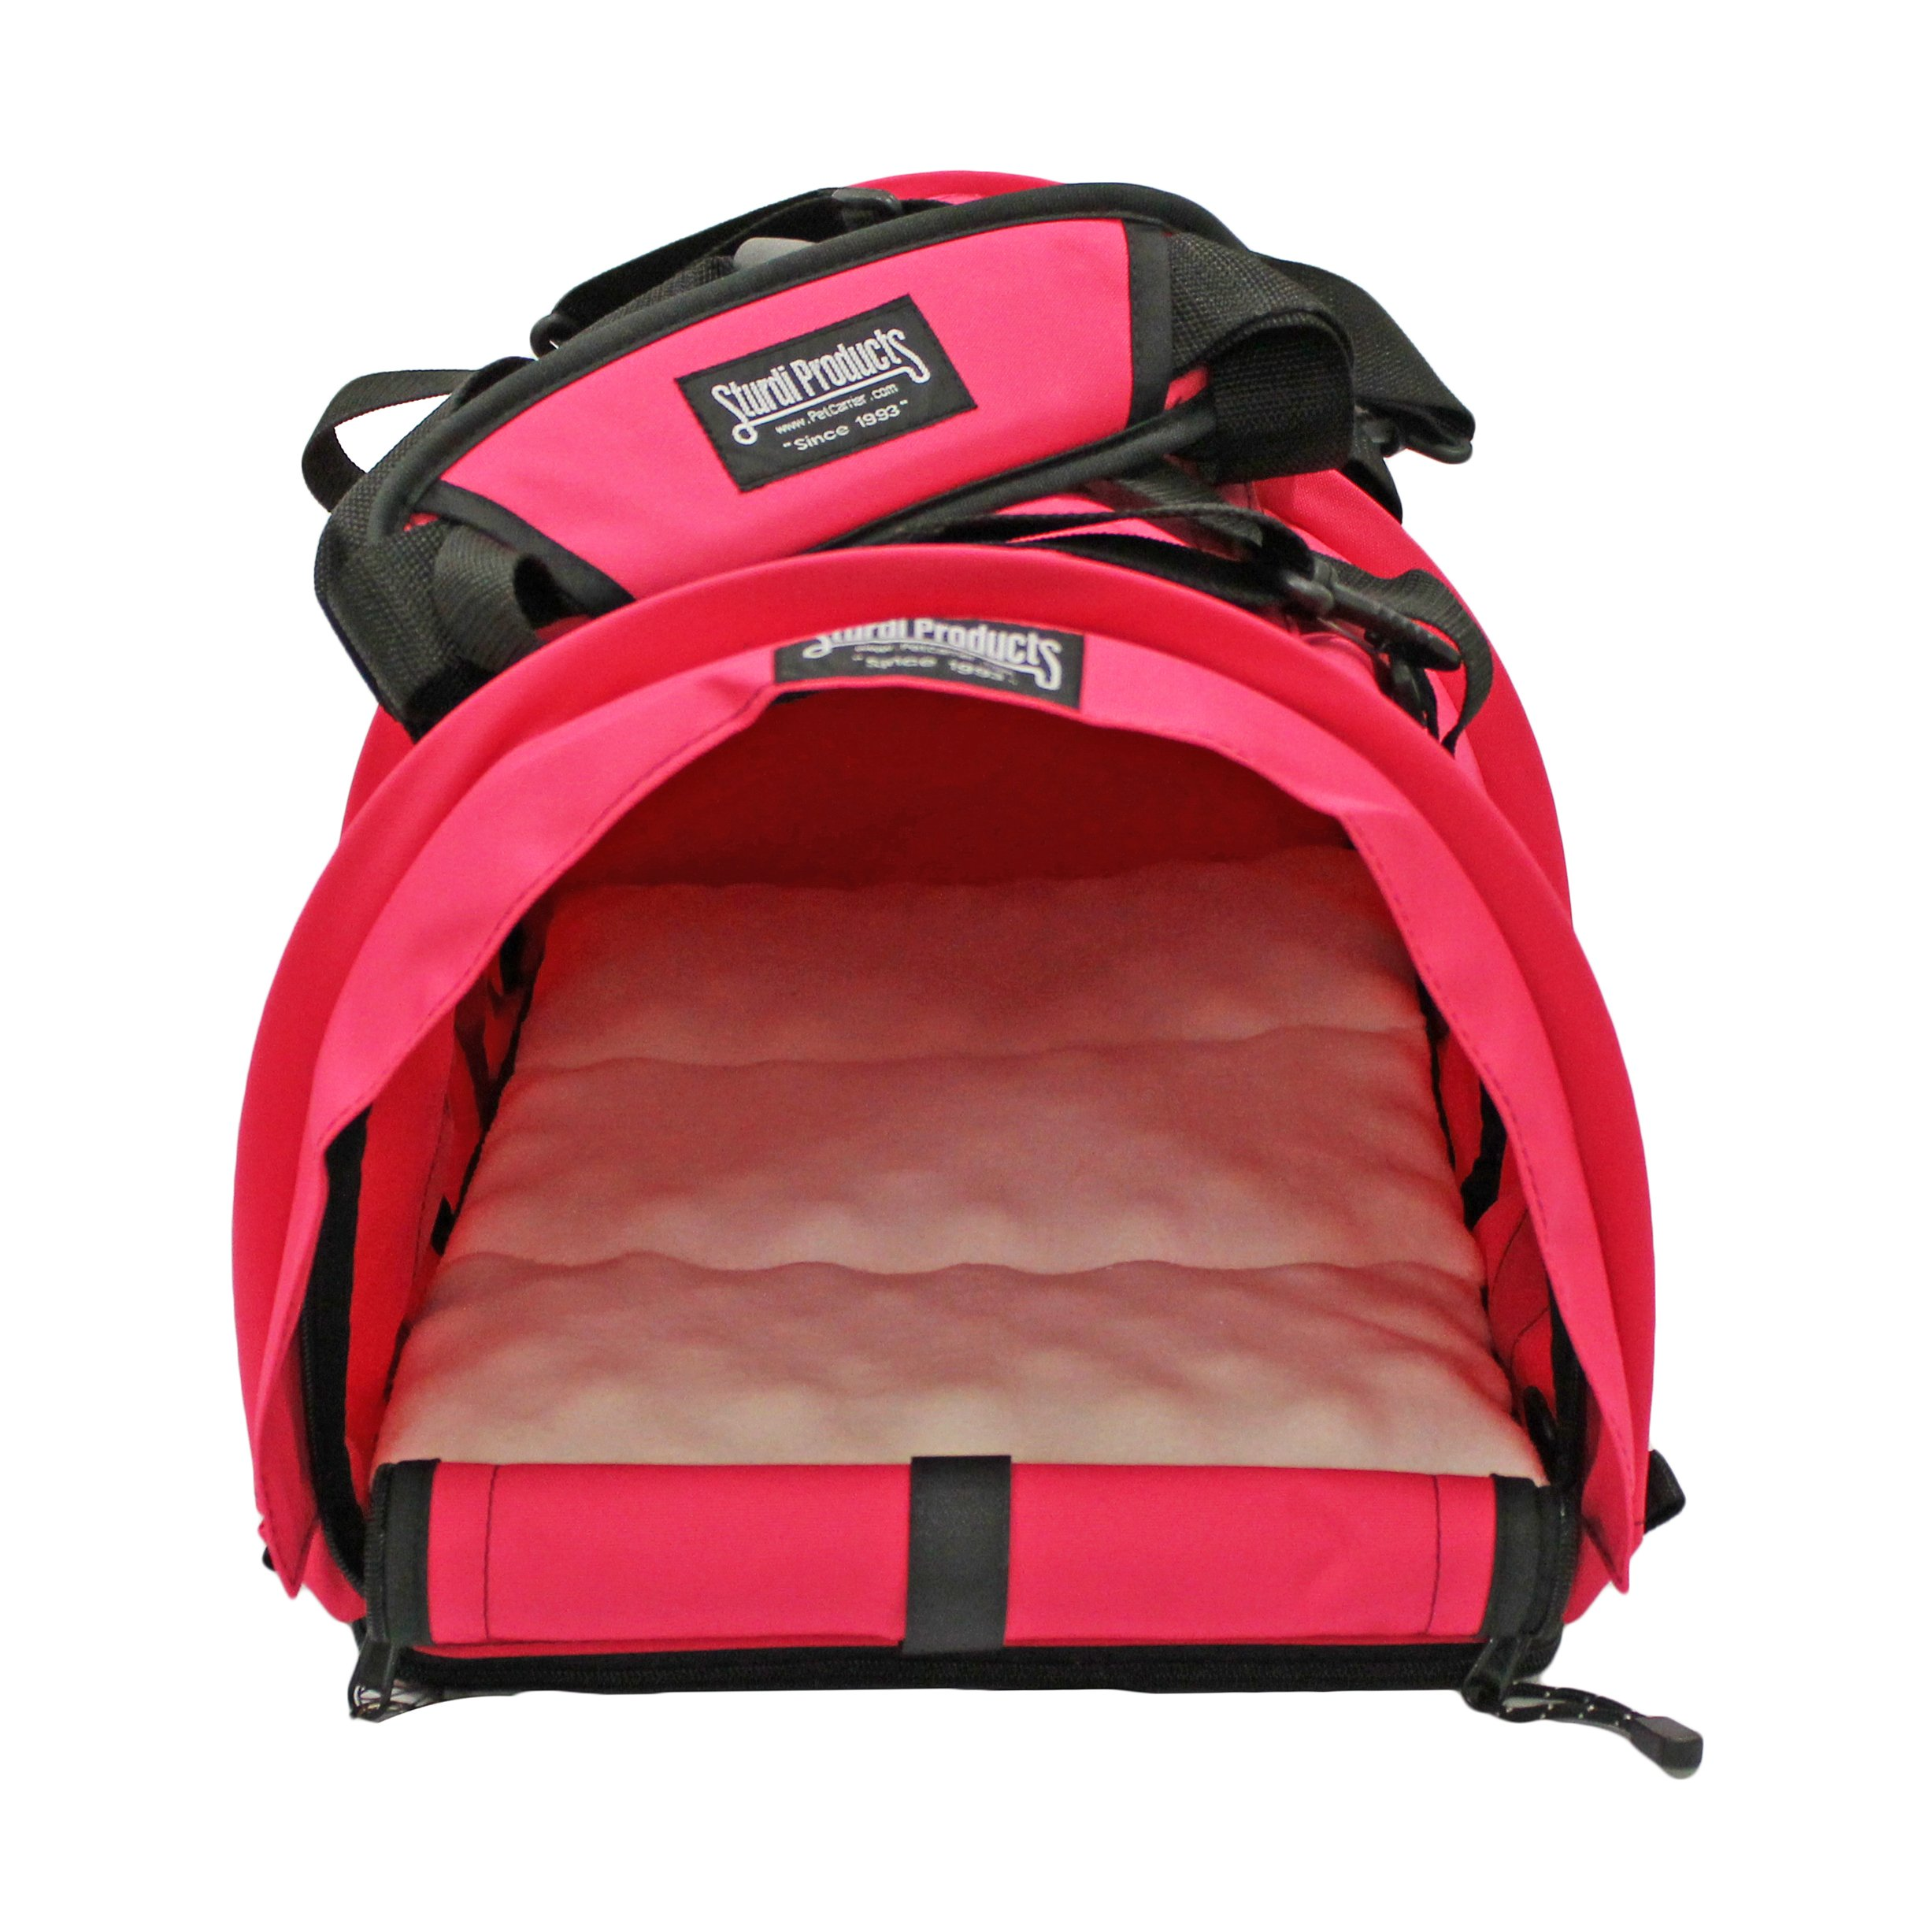 STURDI PRODUCTS SturdiBag Large Pet Carrier, Hot Pink by STURDI PRODUCTS